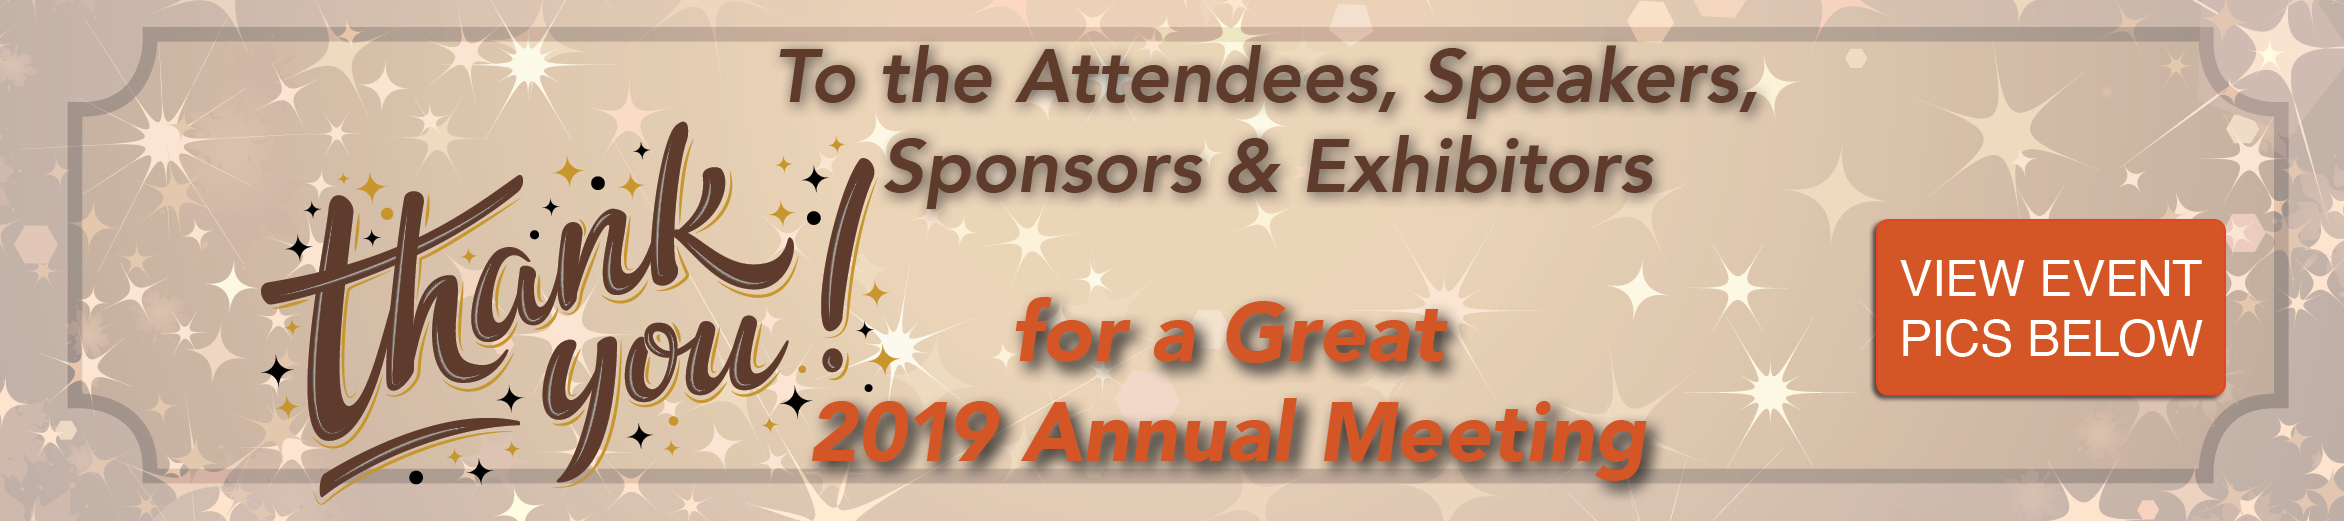 register for KBA annual meeting in Topeka. June 20-21, 2019